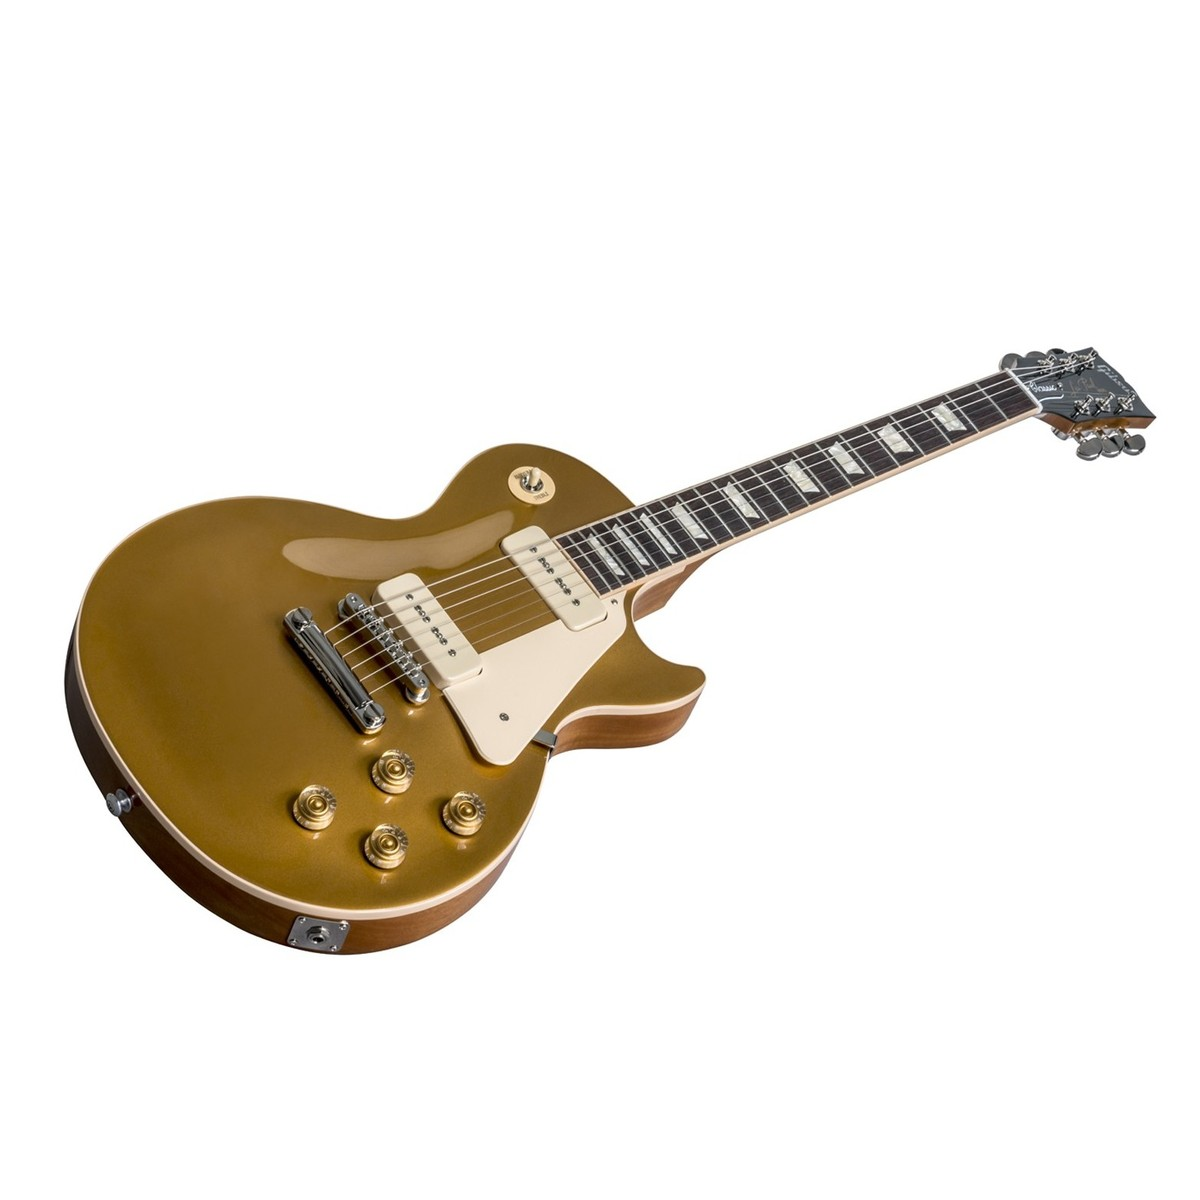 Disc Gibson Les Paul Classic 2018 Left Handed Goldtop At Gear4music Toggle Switch Wiring Electric Guitar Loading Zoom